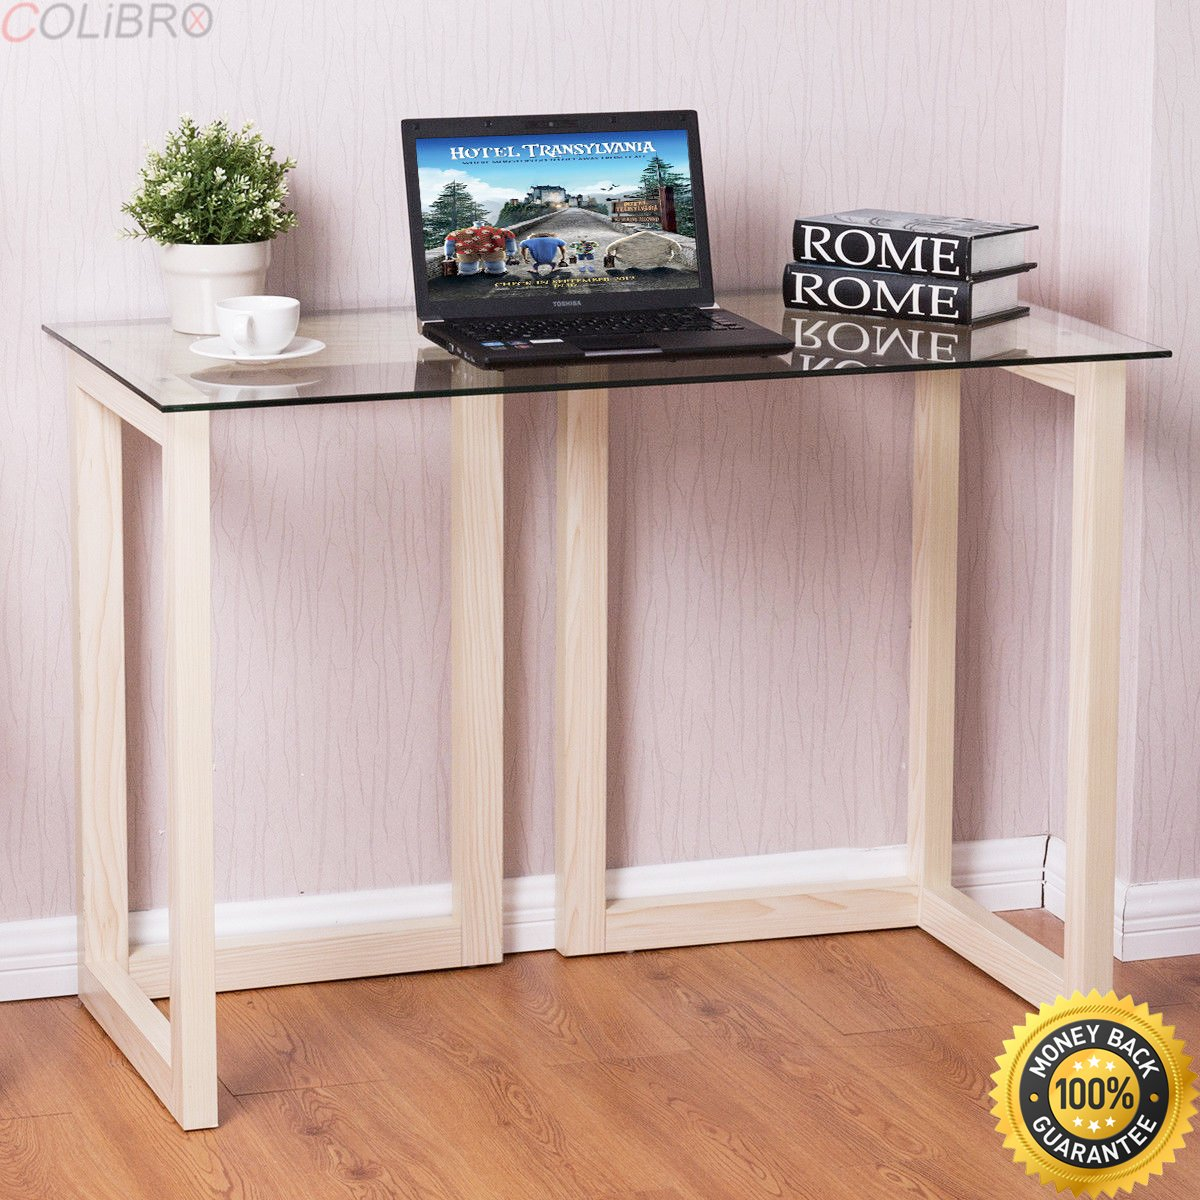 colibrox tempered glass top console desk sofa solid wood accent tables table entryway furniture living room nursery and coffee set iron frame queen west elm tripod floor lamp